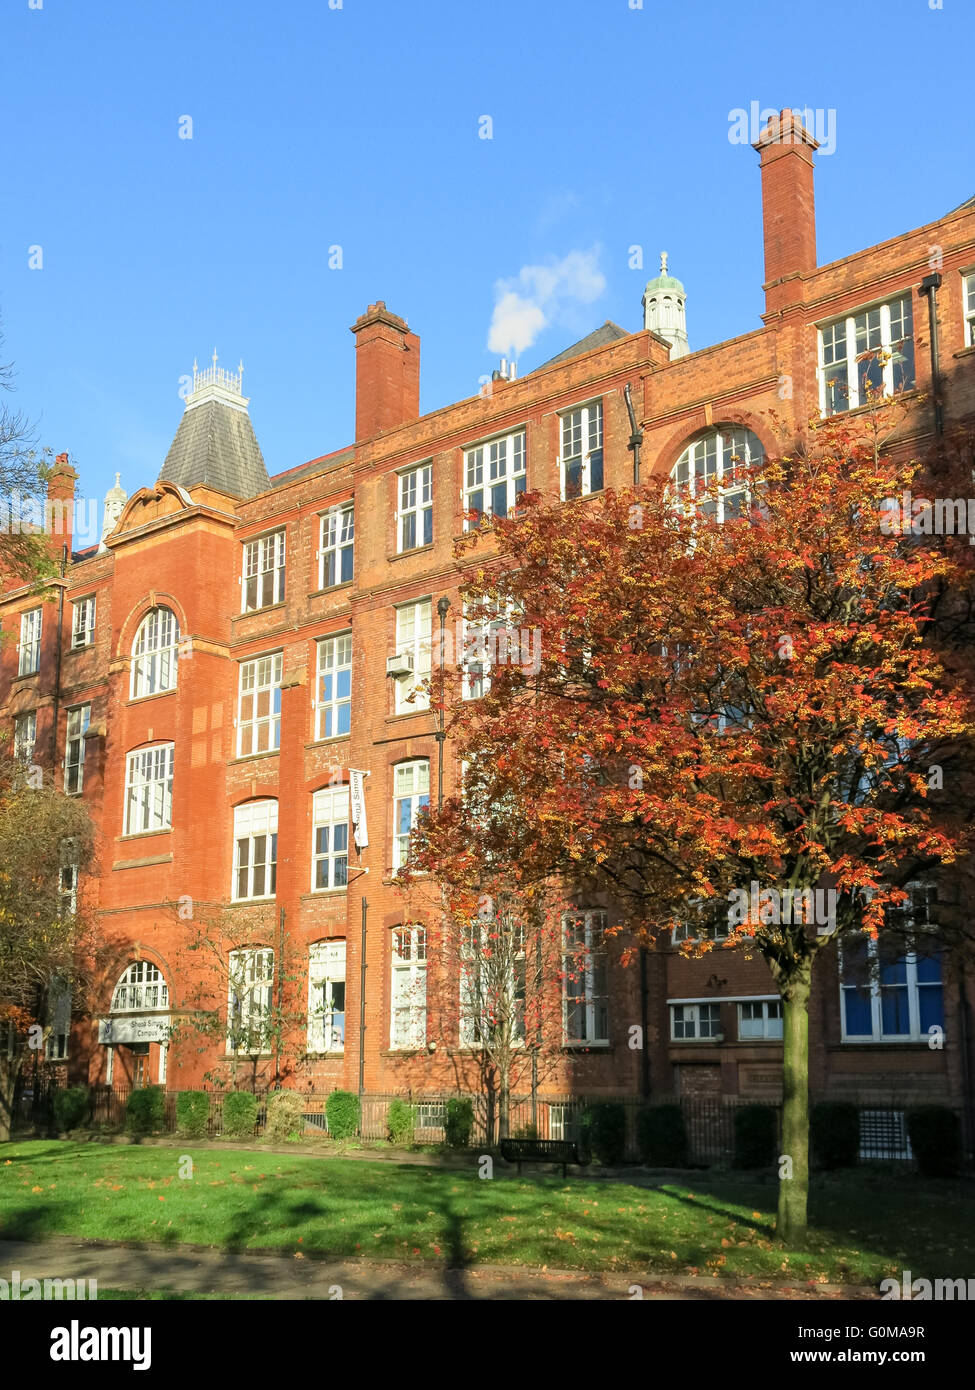 Autumn in Sackville Gardens in the city of Manchester, Cheshire, England, UK - Stock Image